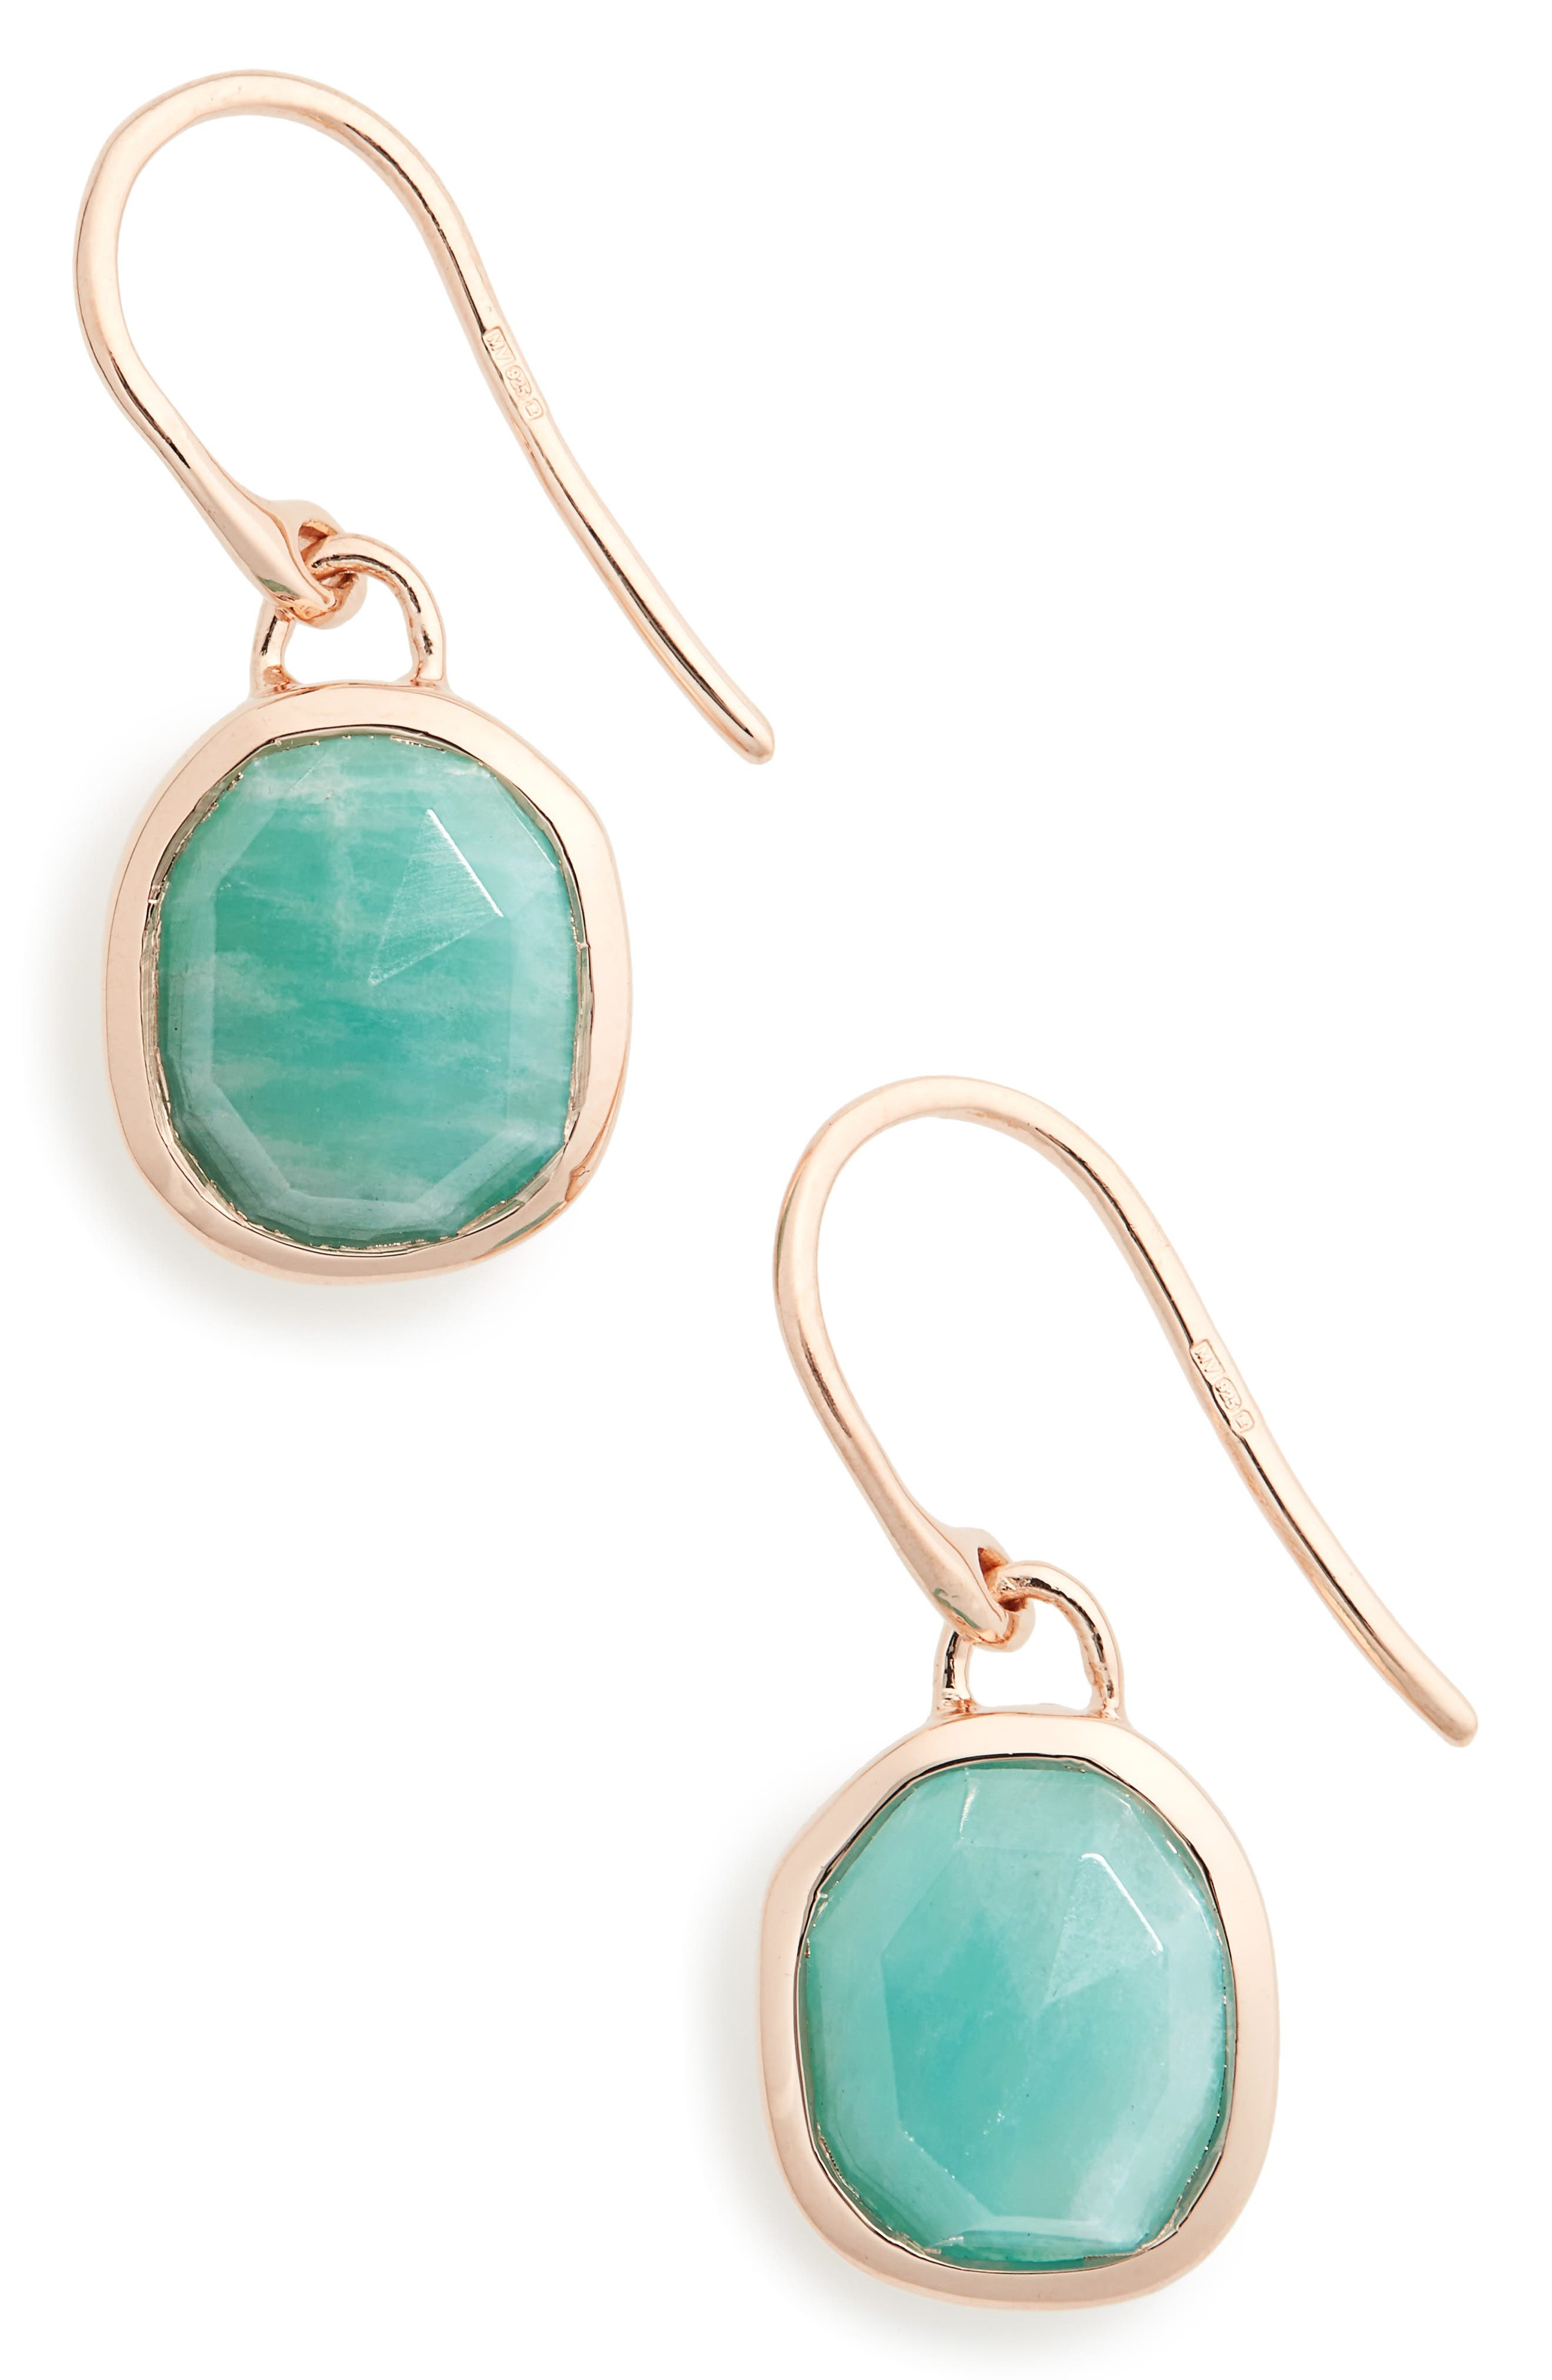 Siren Semiprecious Stone Drop Earrings,                             Alternate thumbnail 2, color,                             AMAZONITE/ ROSE GOLD